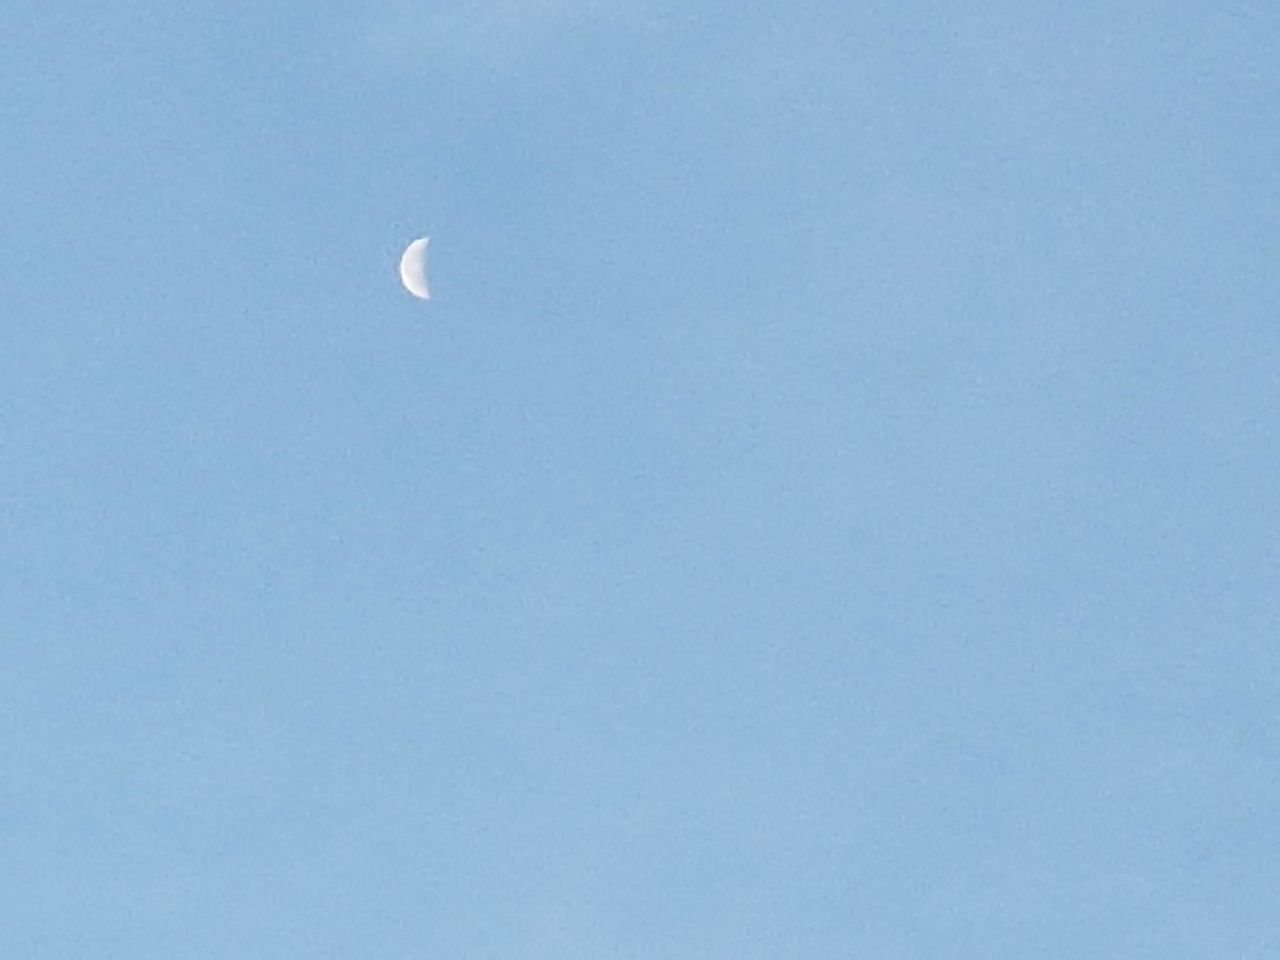 moon, nature, clear sky, copy space, half moon, low angle view, astronomy, crescent, beauty in nature, blue, scenics, tranquility, sky, outdoors, day, no people, space exploration, space